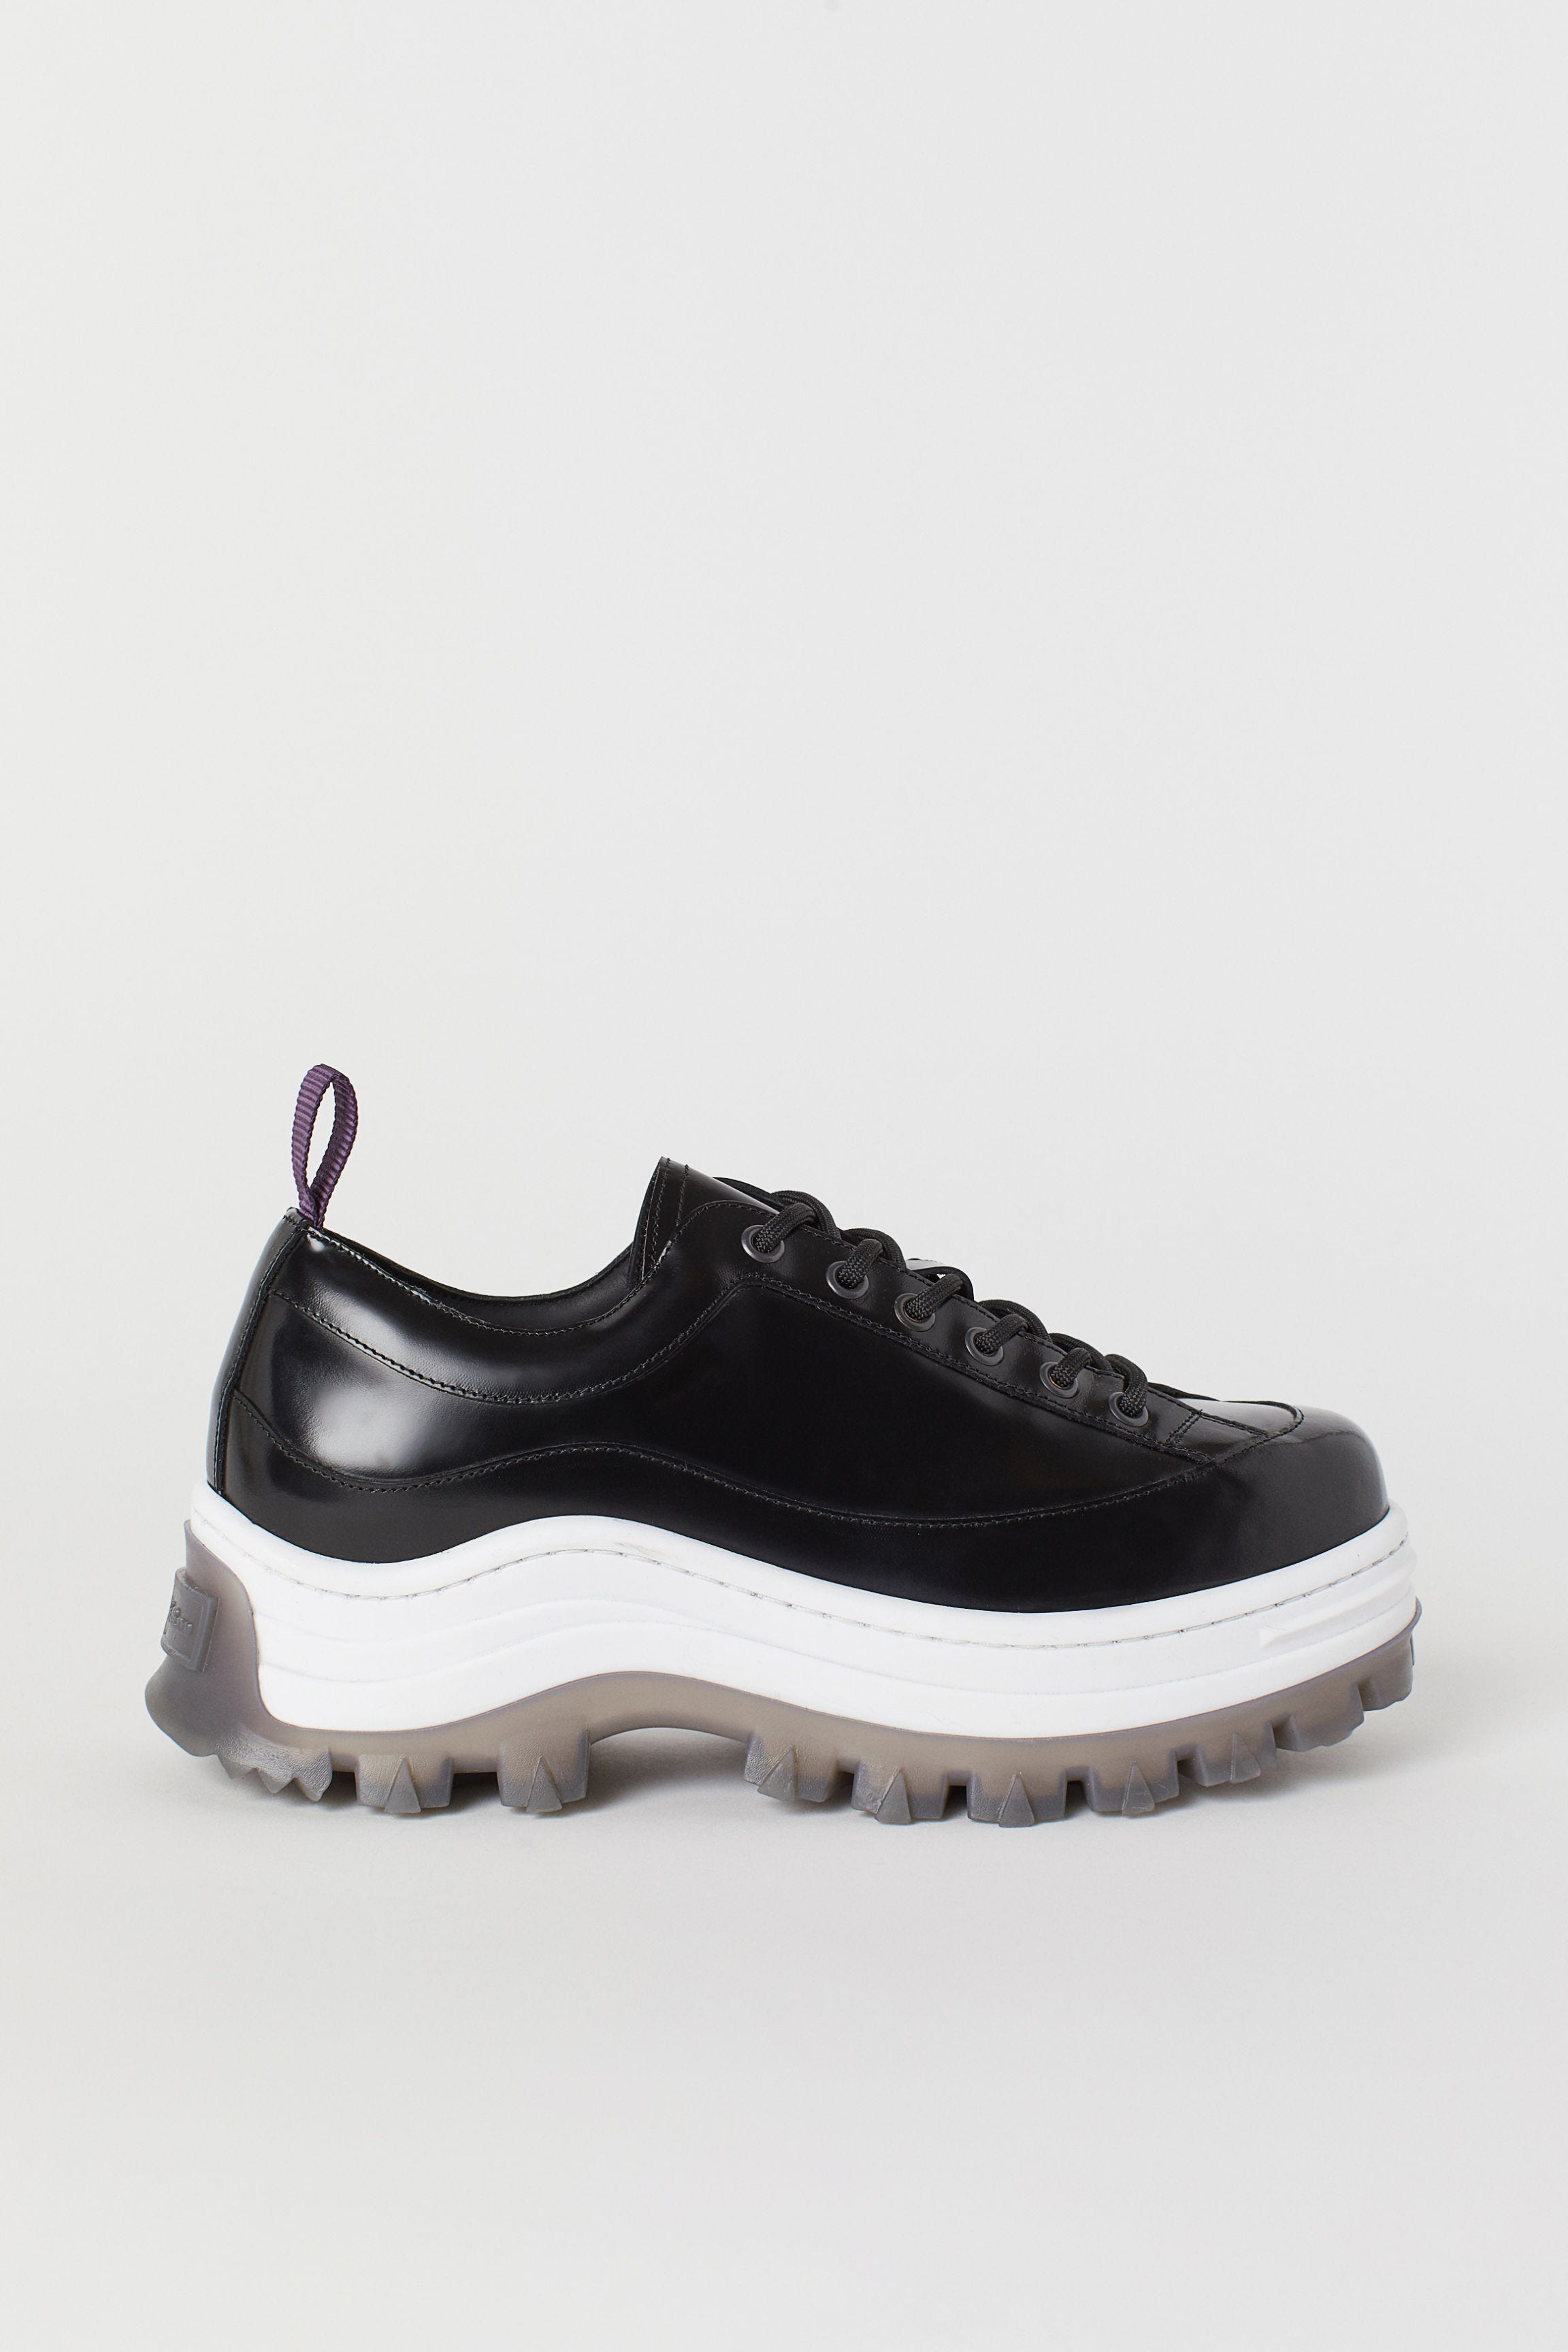 H\u0026amp;M x Eytys + Leather Sneakers